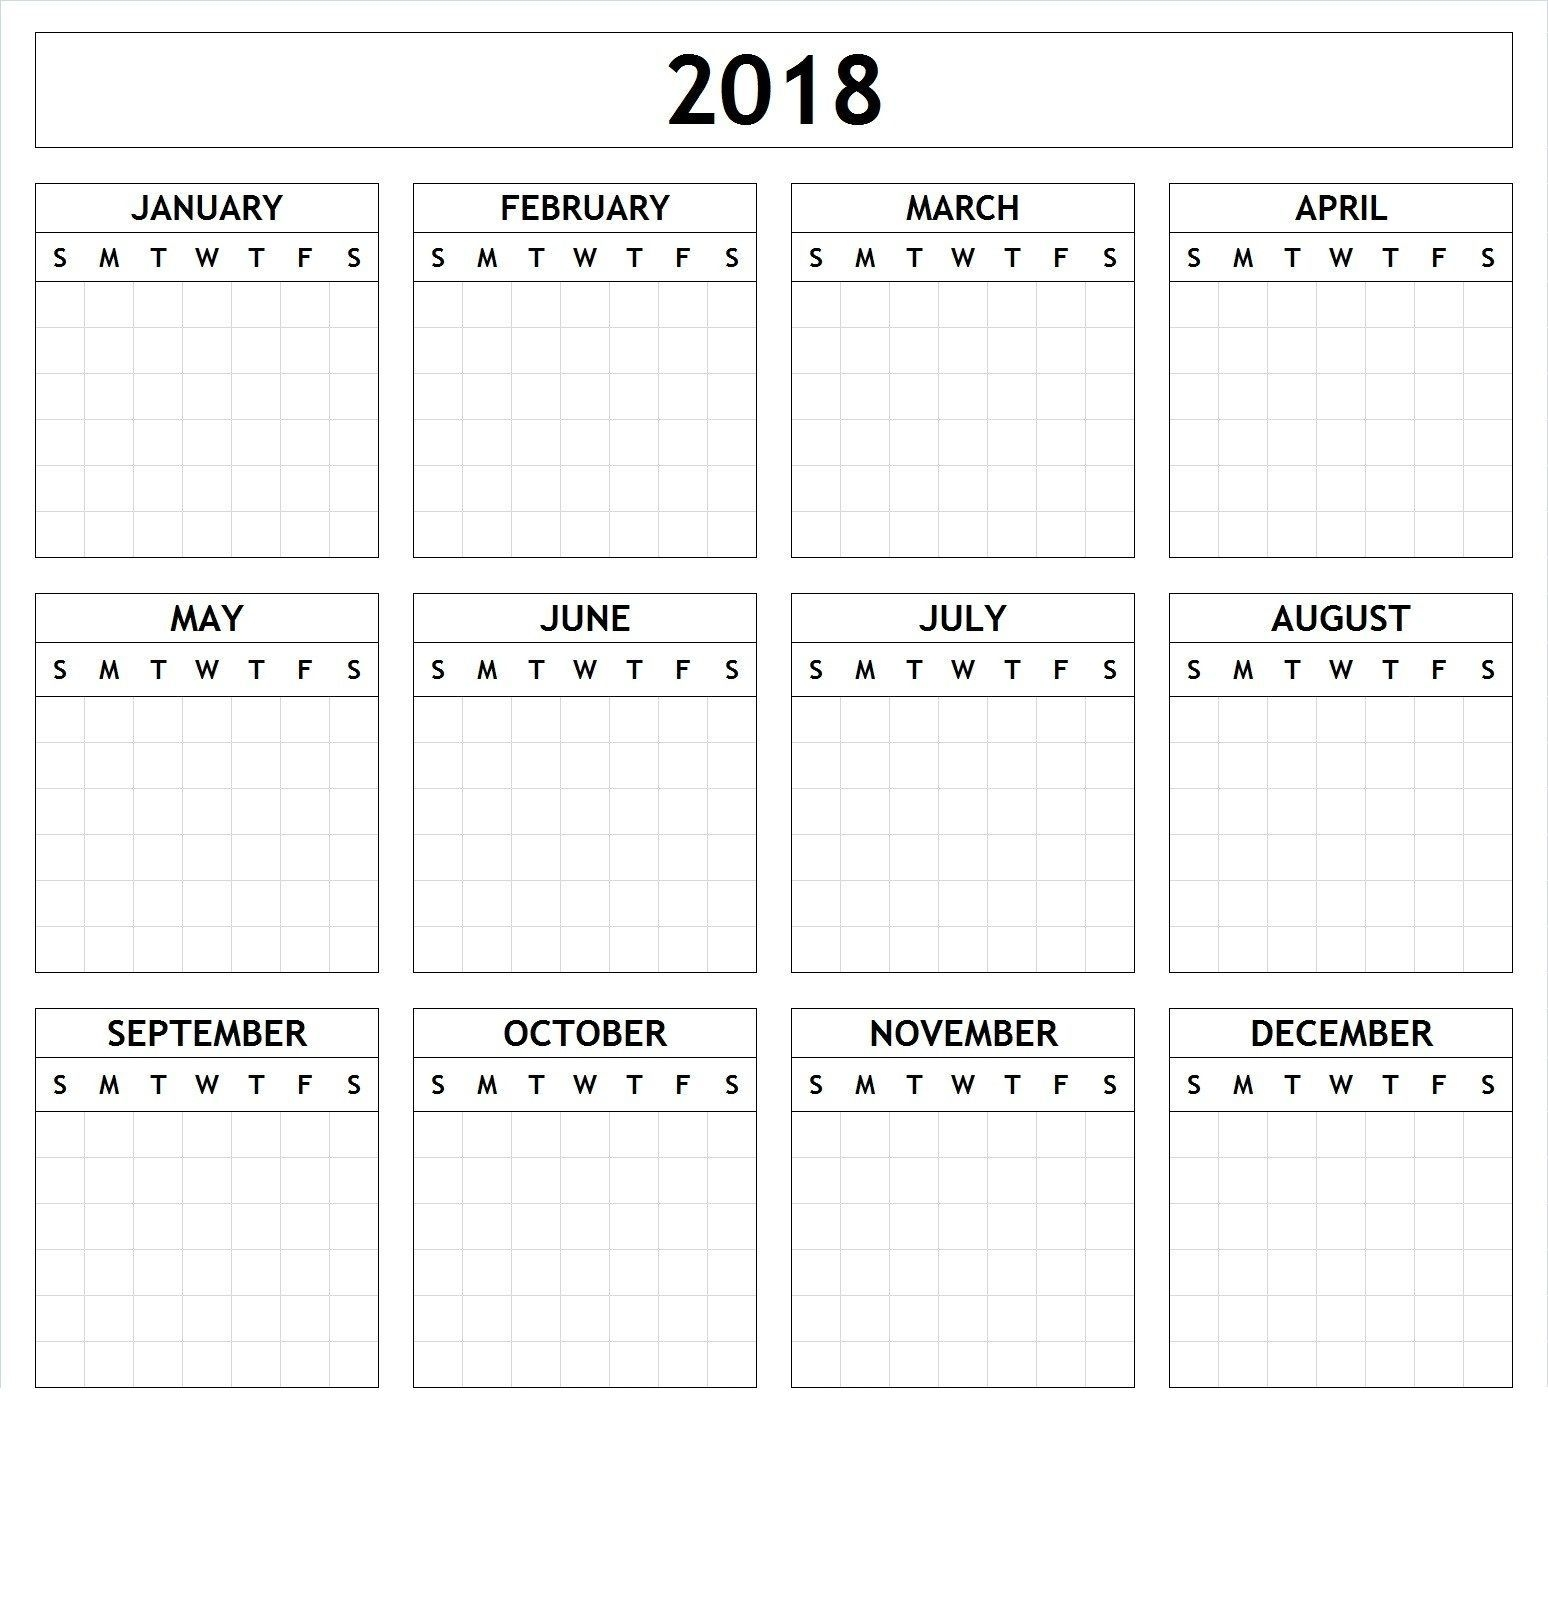 Yearly Calendar Template Large Print (With Images) | Yearly